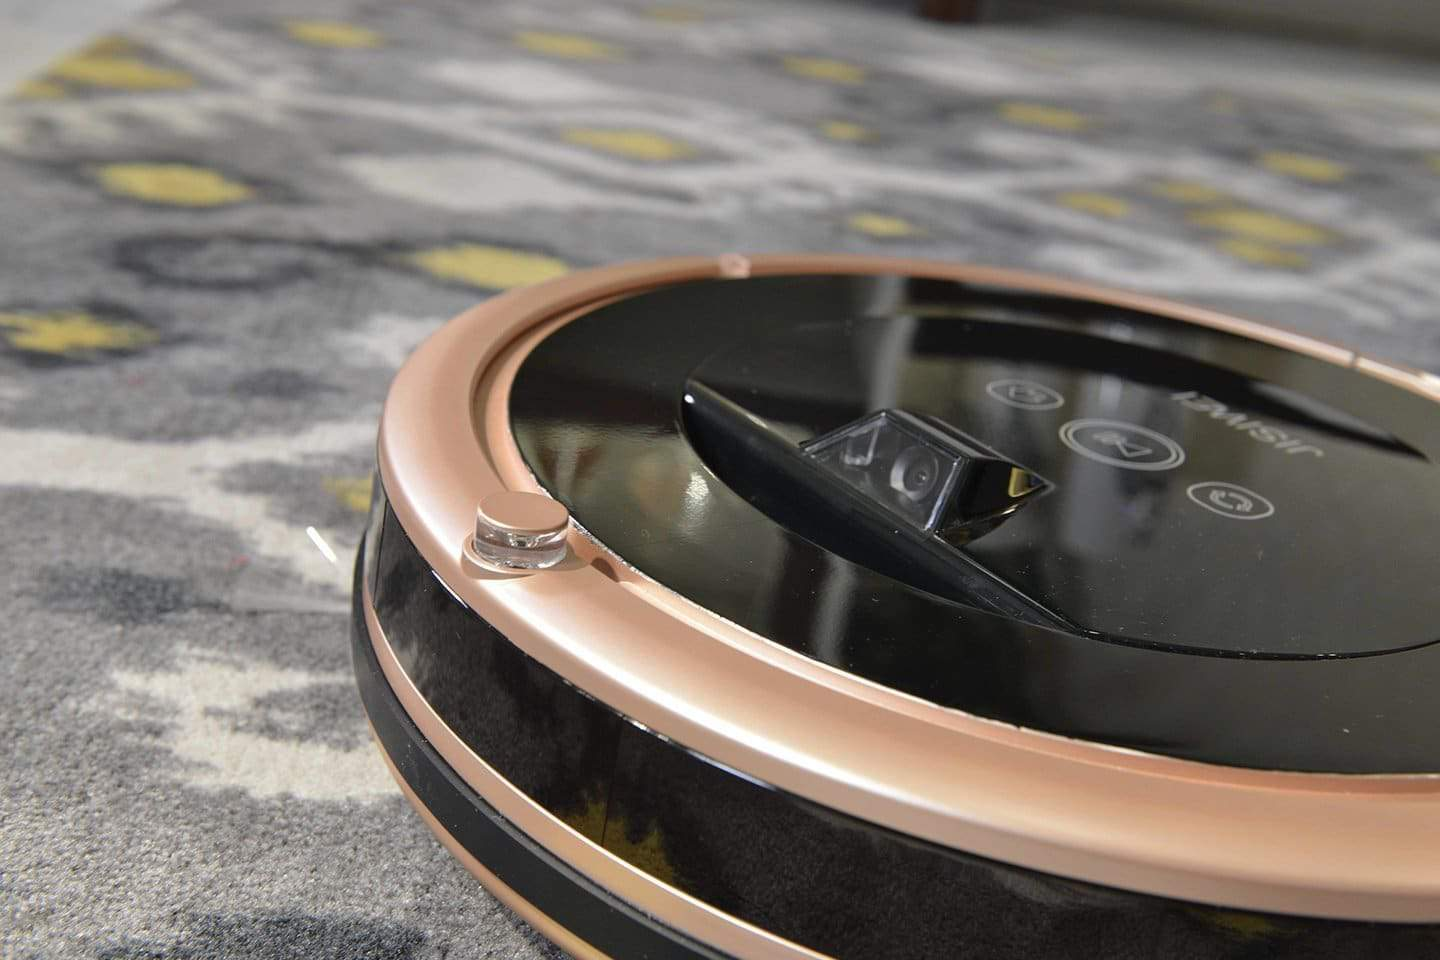 Introducing The Next Generation i5 Robot Vacuum Cleaner Expected To Hit IndieGoGo Soon - 3